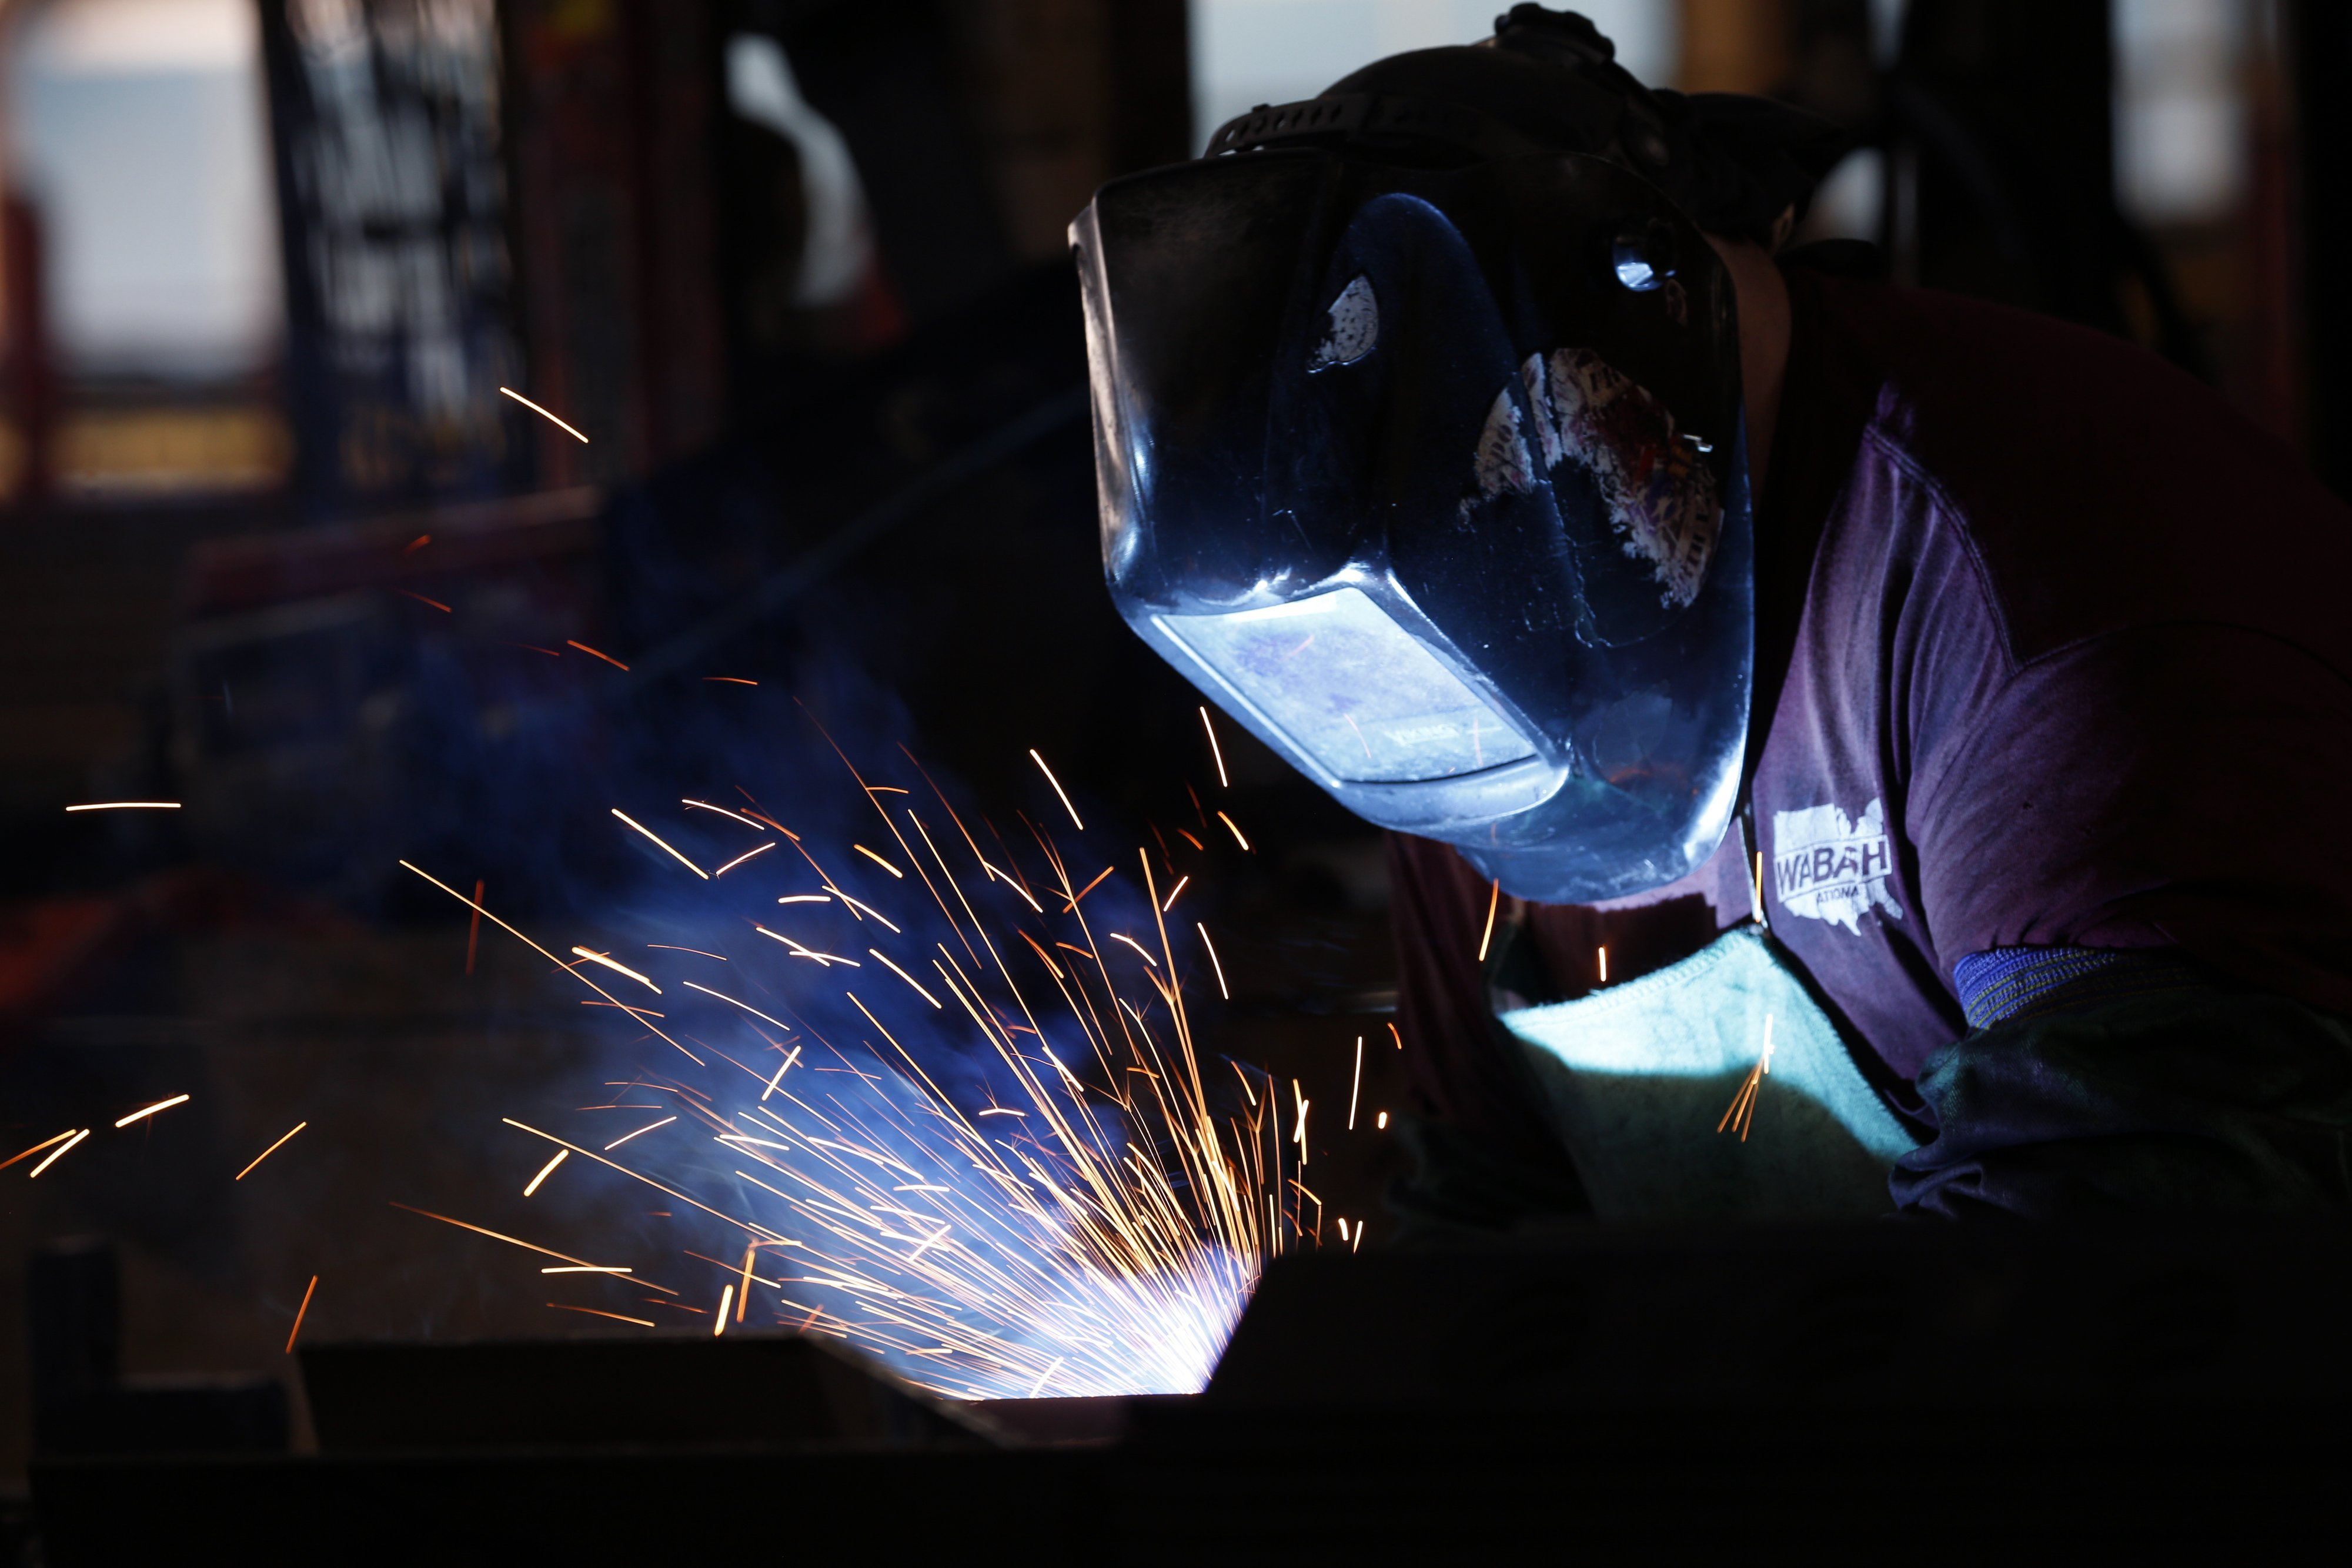 America's manufacturing sector shrank for the first time in nearly a decade